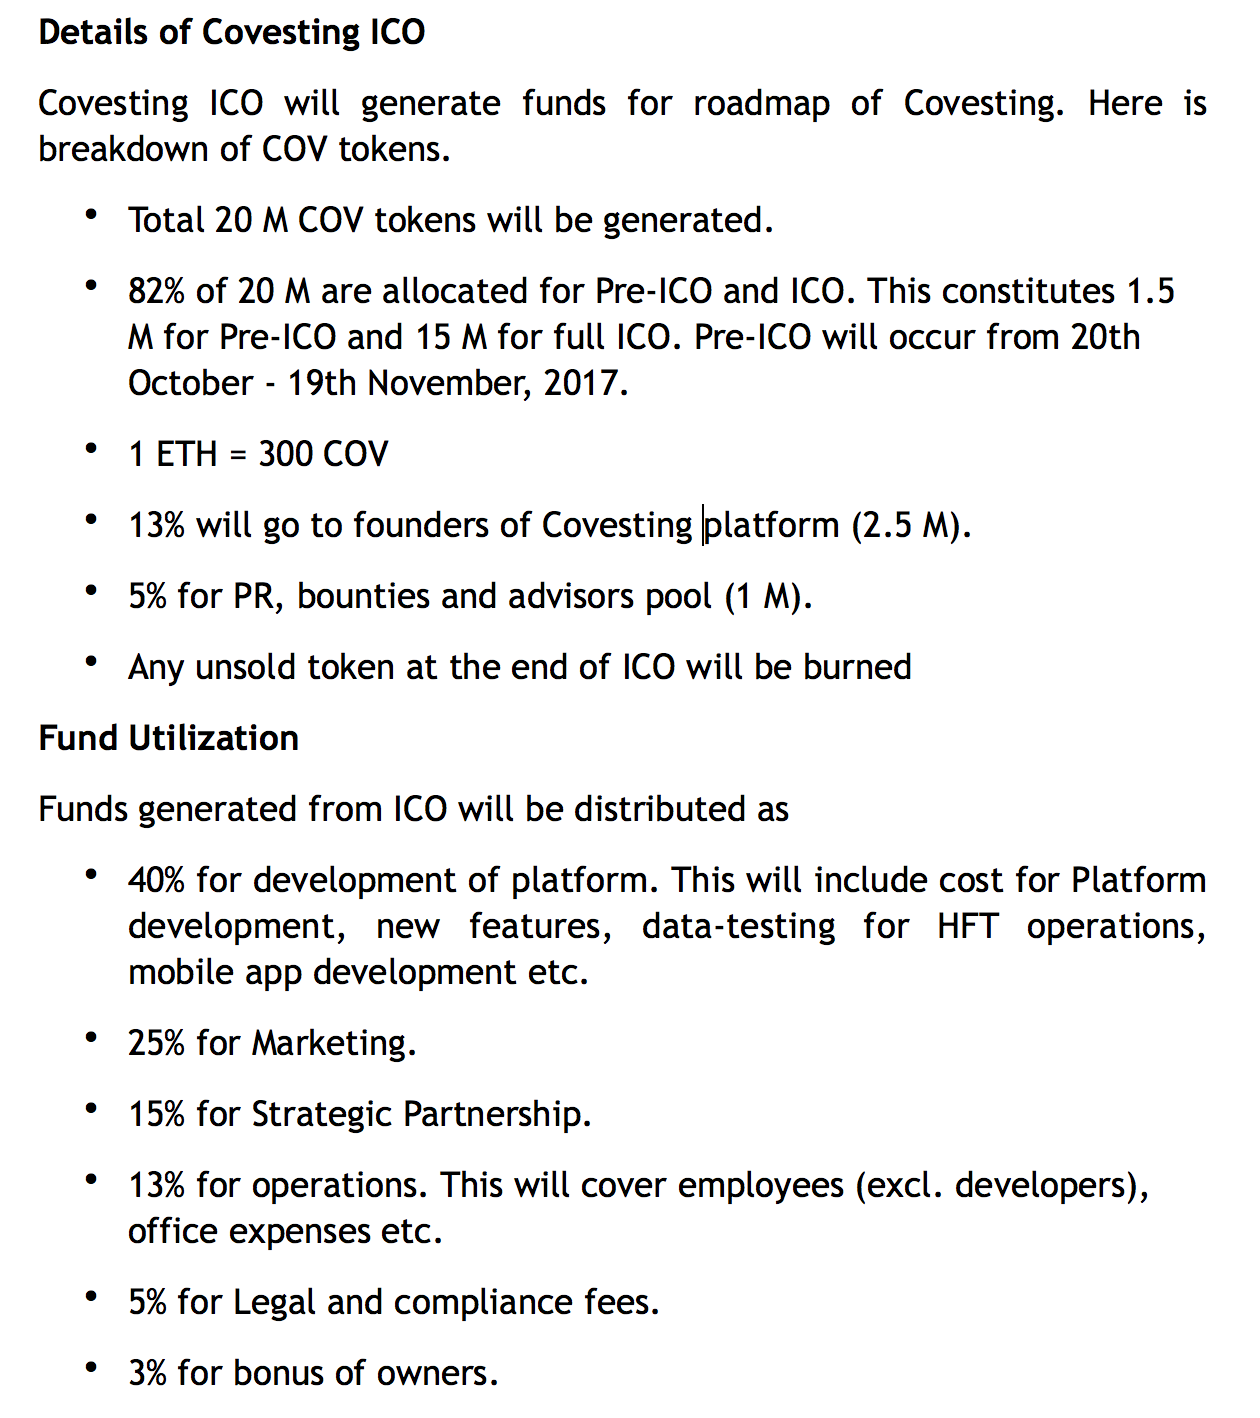 Covesting-ICO- details